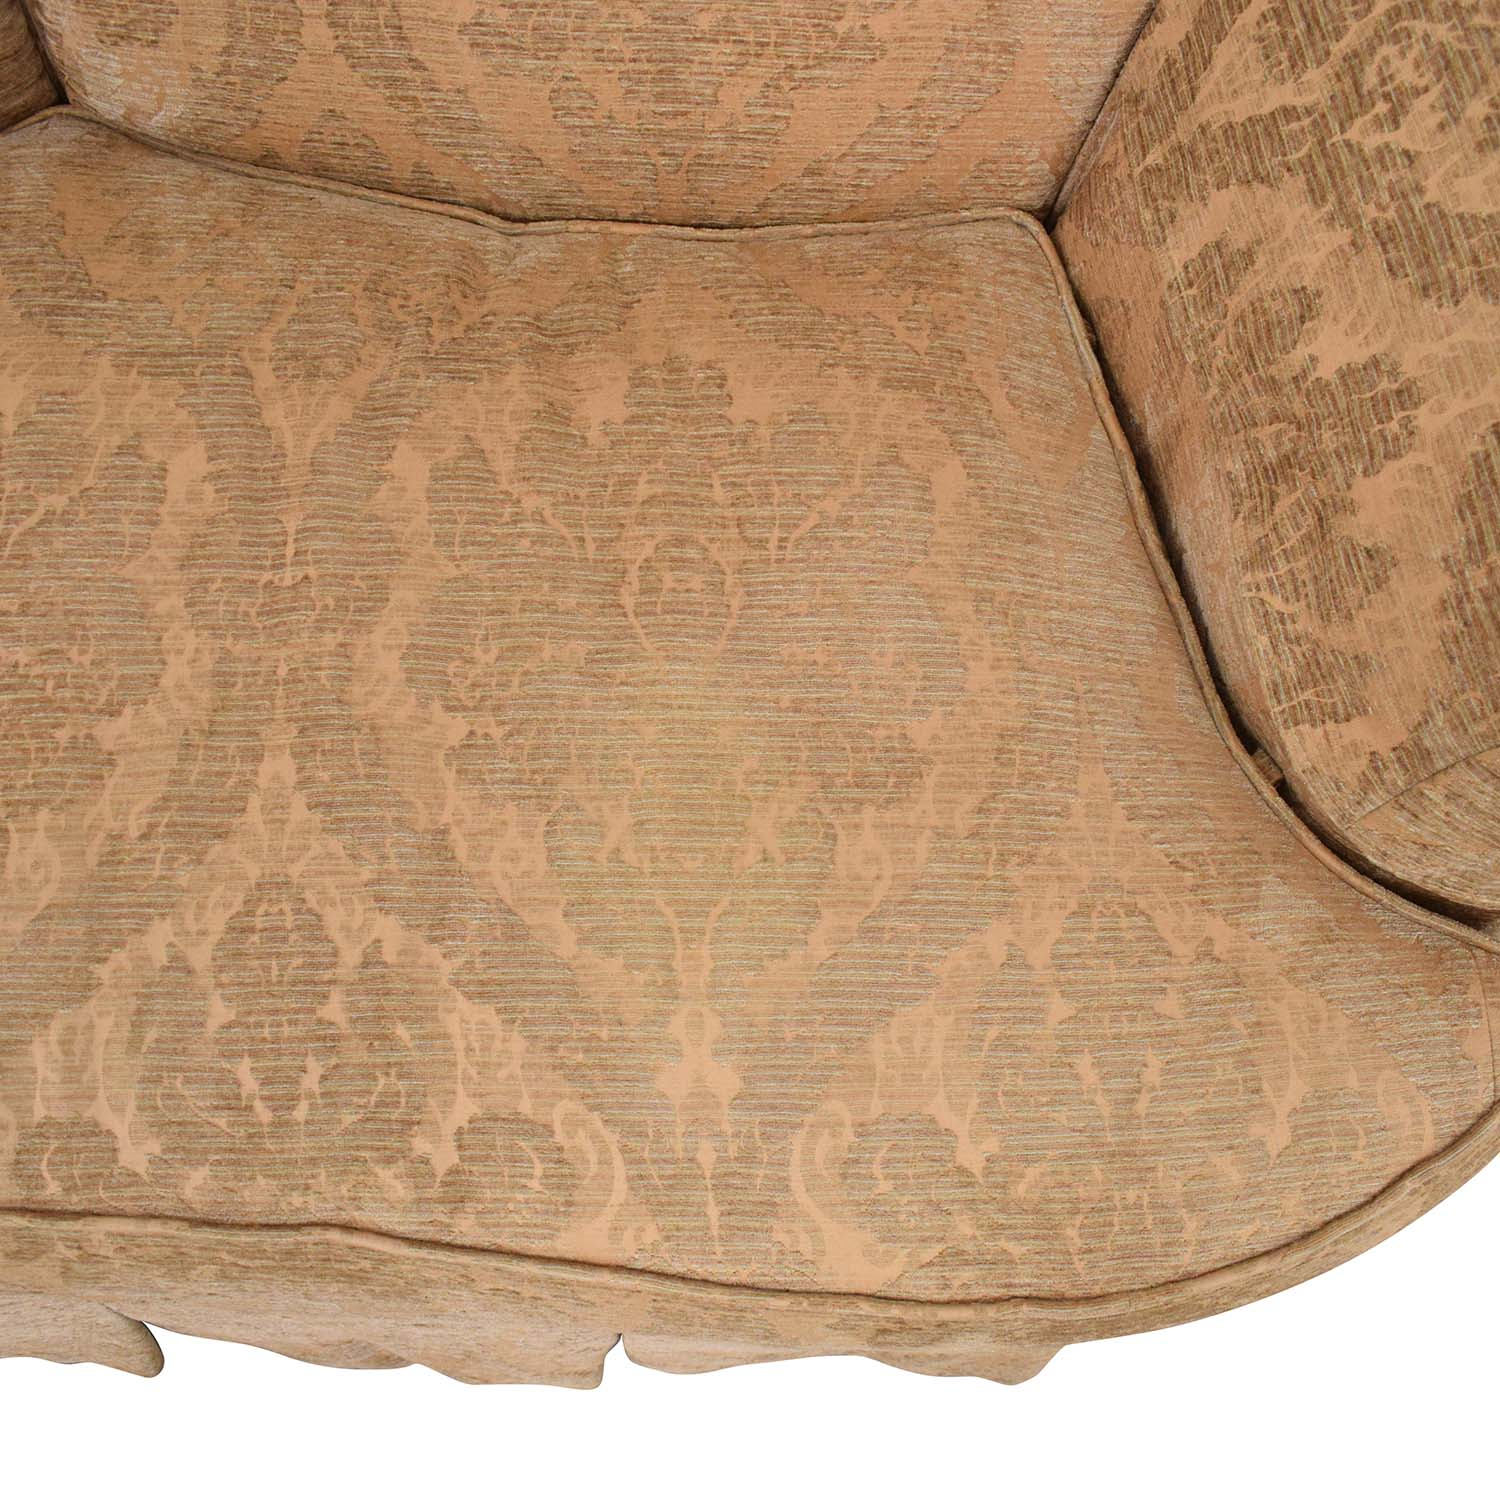 Kravet Kravet Slipcovered Loveseat used